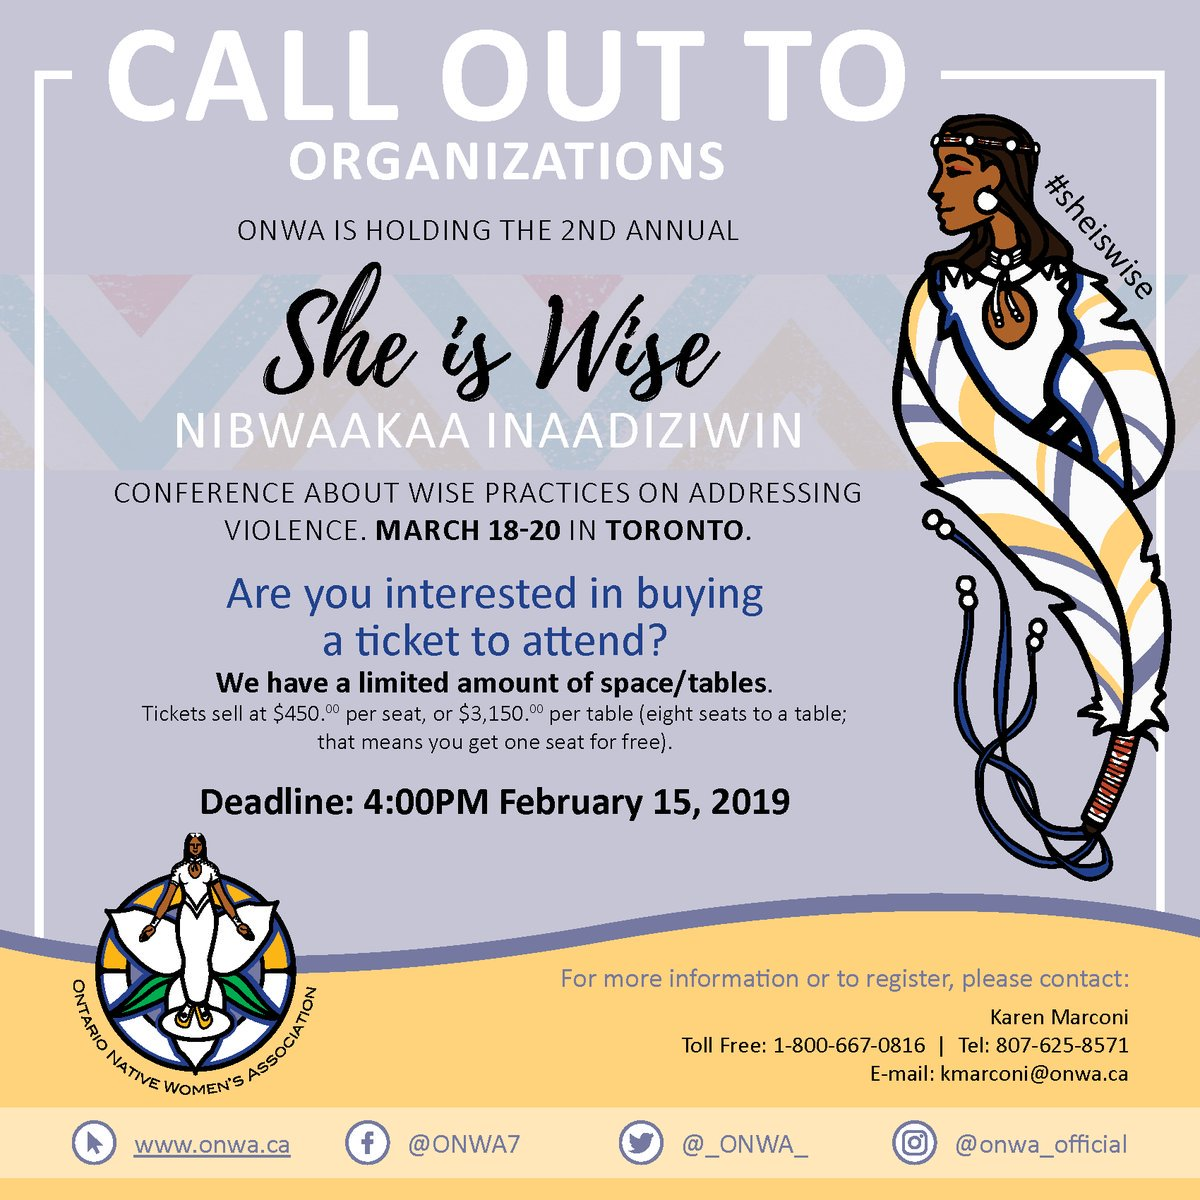 MT @_ONWA_: Interested in attending the #sheiswise Conference?  To purchase a ticket/table, contact: kmarconi@onwa.ca before 4:00PM Feb 15. Tickets sell at $450 per seat, or $3,150 per table (eight seats to a table; that means you get one seat for free).  https://www.facebook.com/events/515897912267242/ …